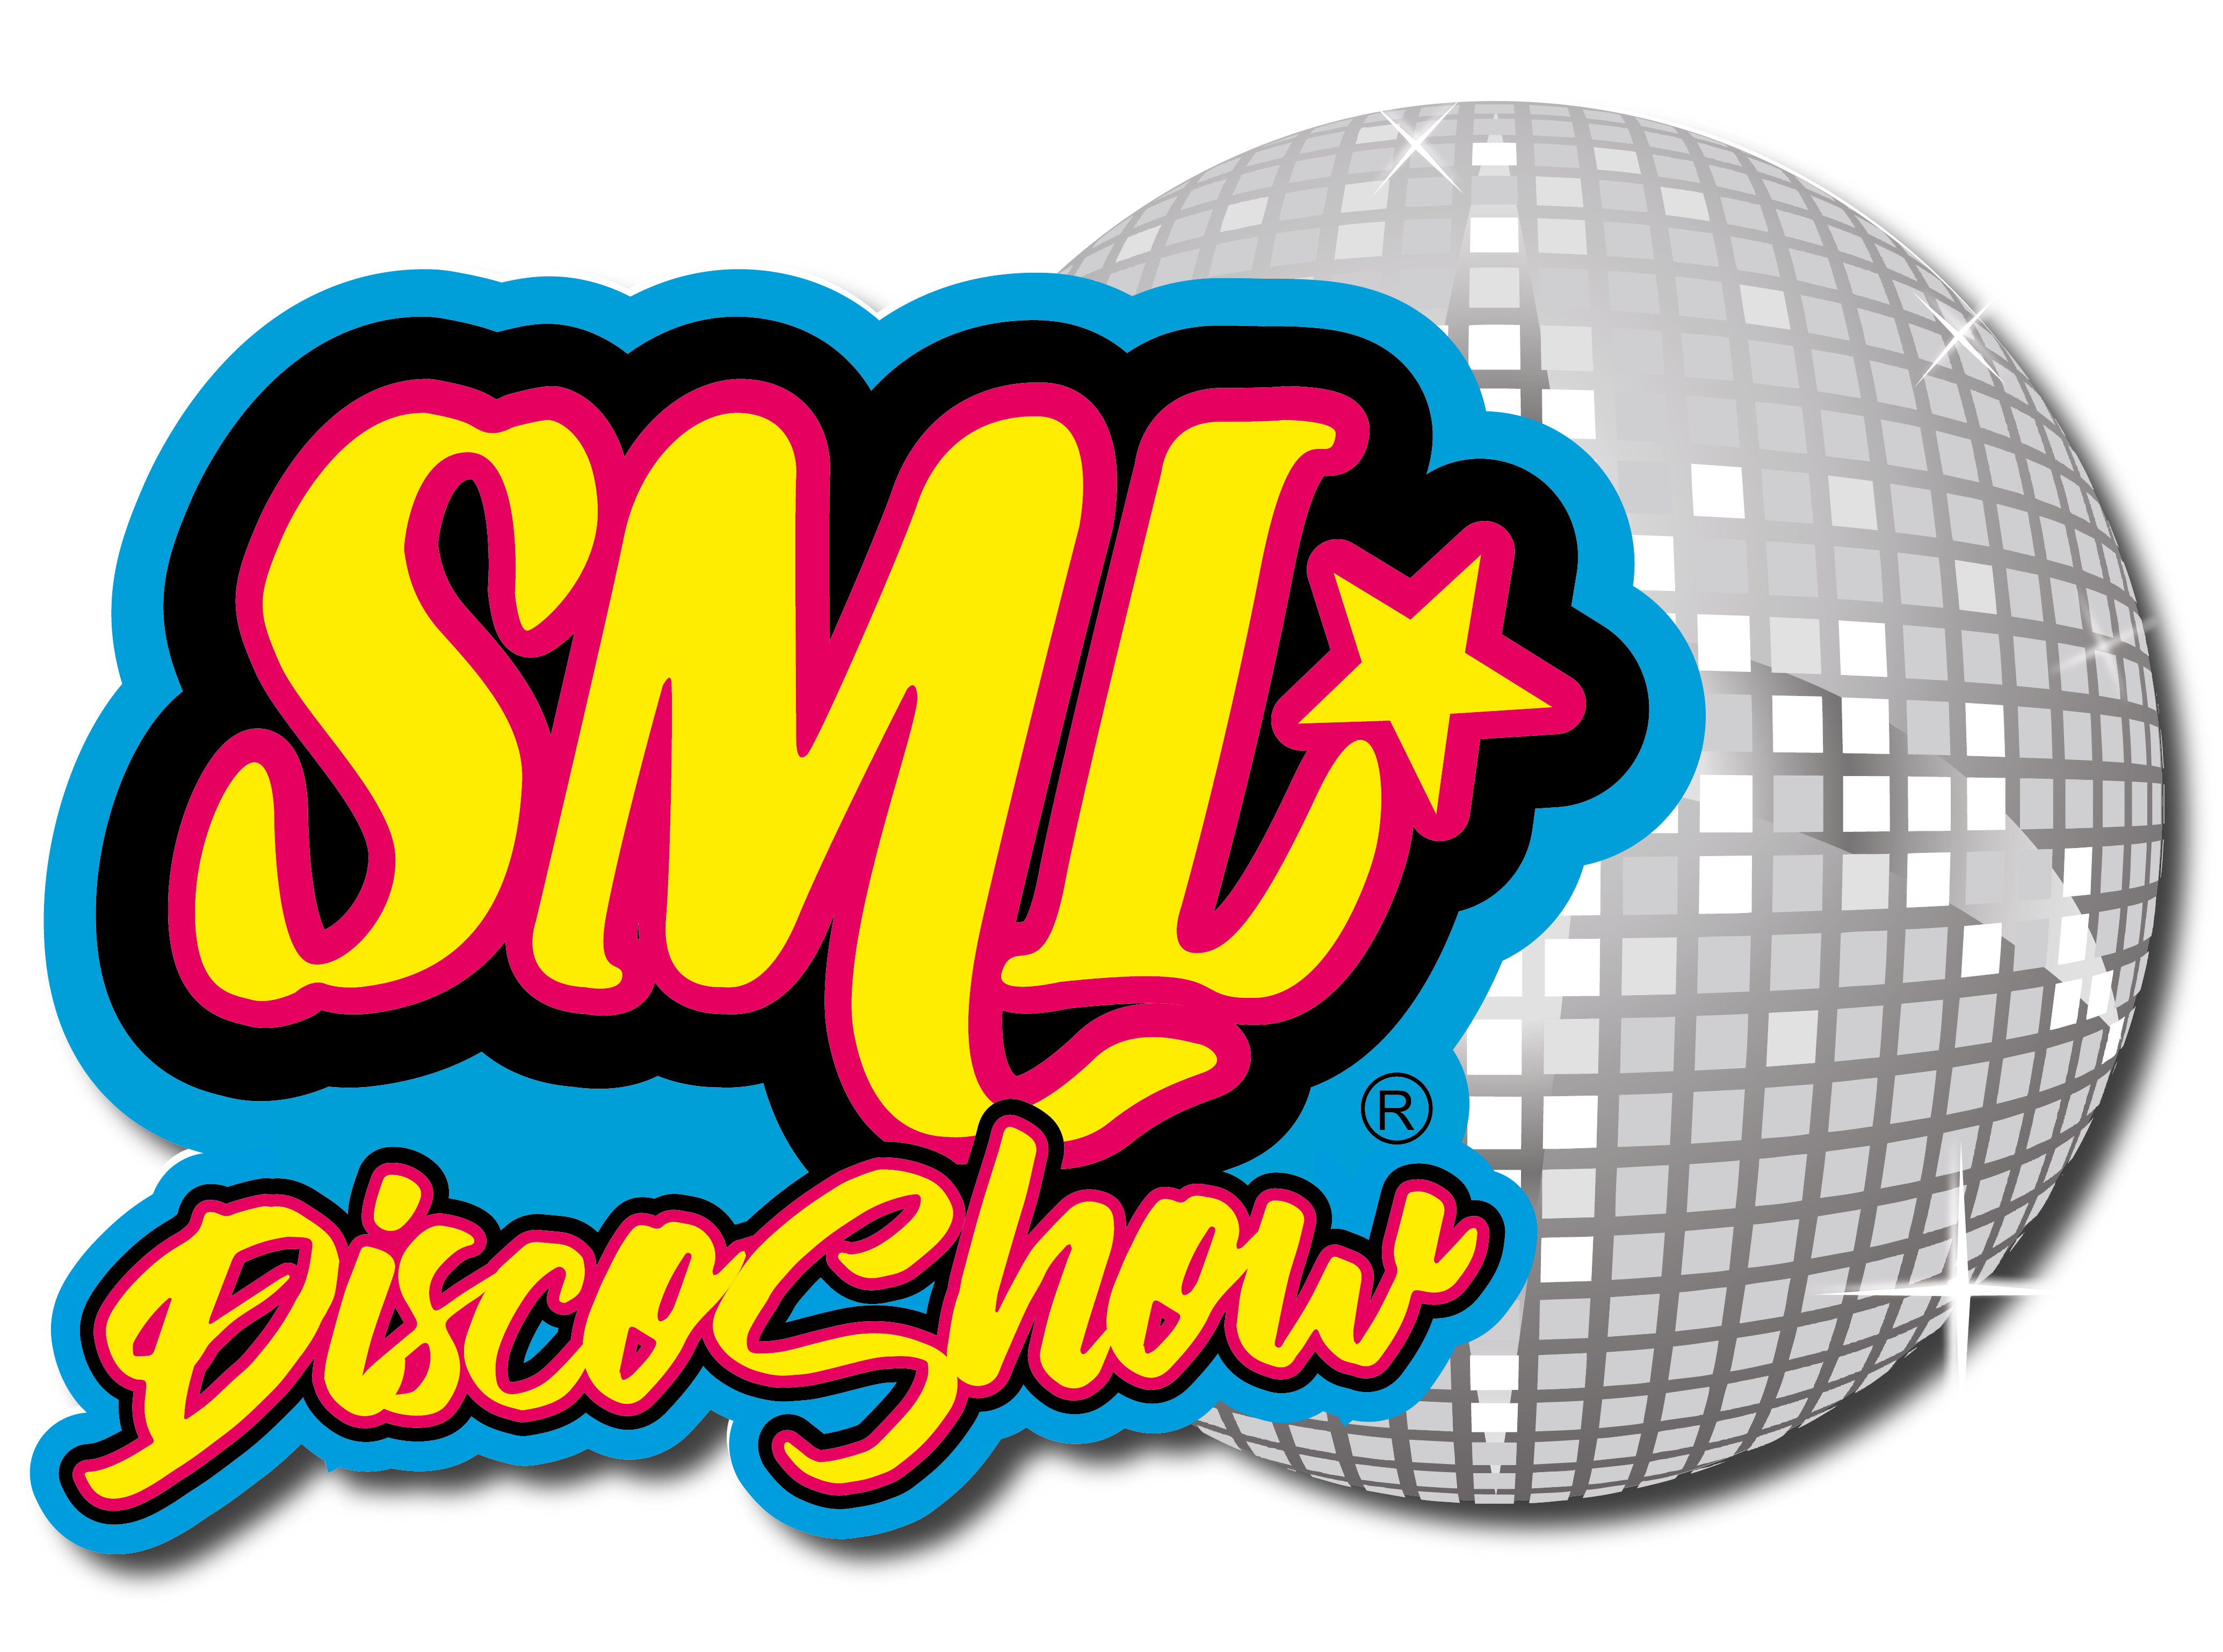 Logo SML discoshow 2019 websites-01